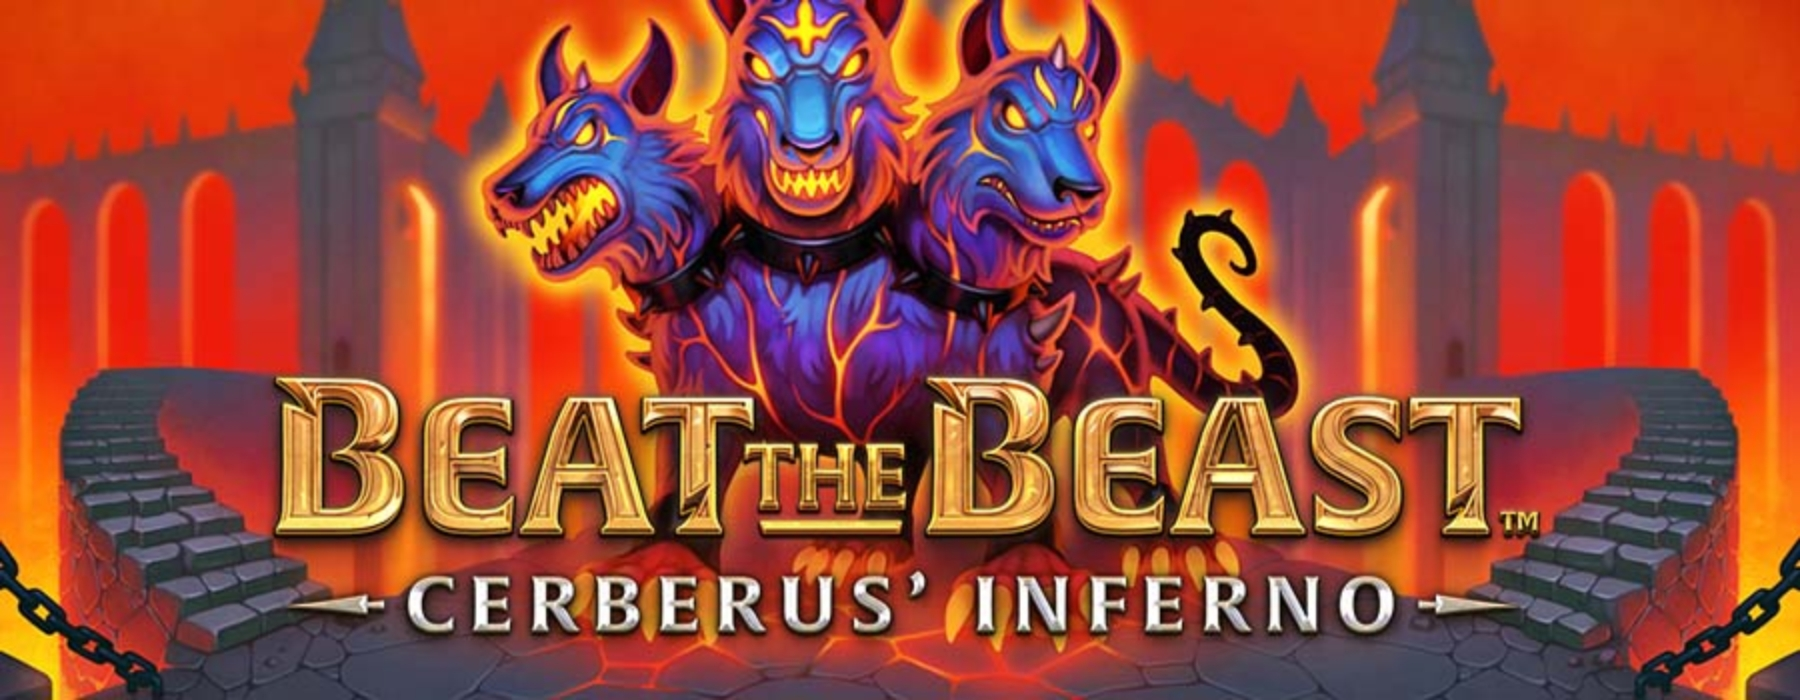 The Beat the Beast Cerberus Inferno Online Slot Demo Game by Thunderkick